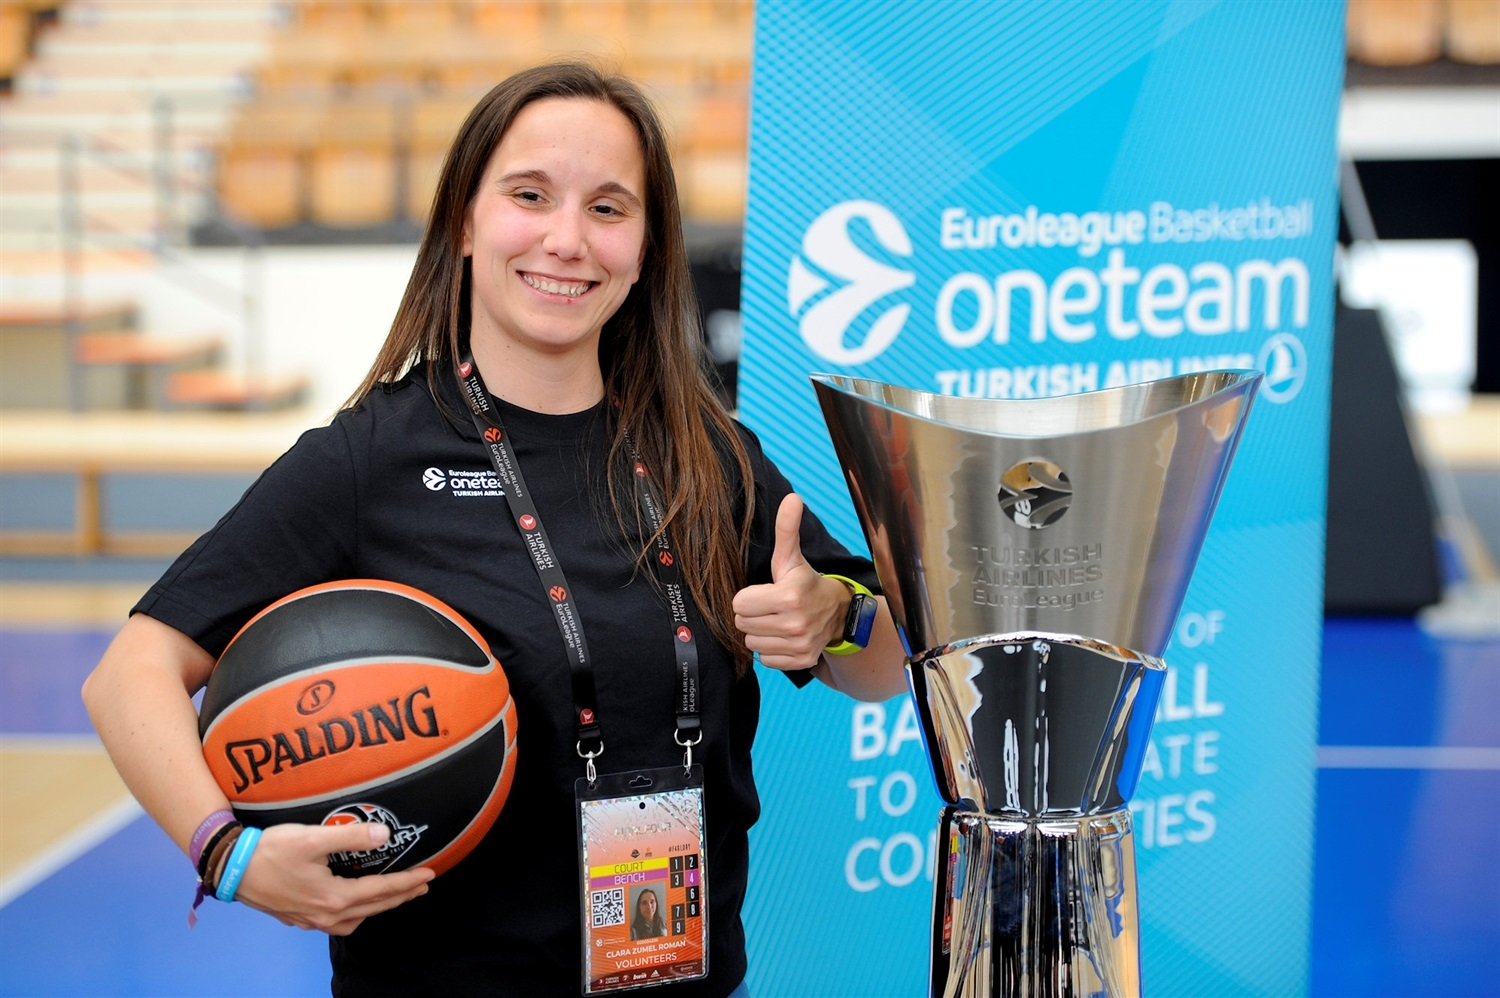 Volunteers - One Team Session - Final Four Vitoria-Gasteiz 2019 - EB18